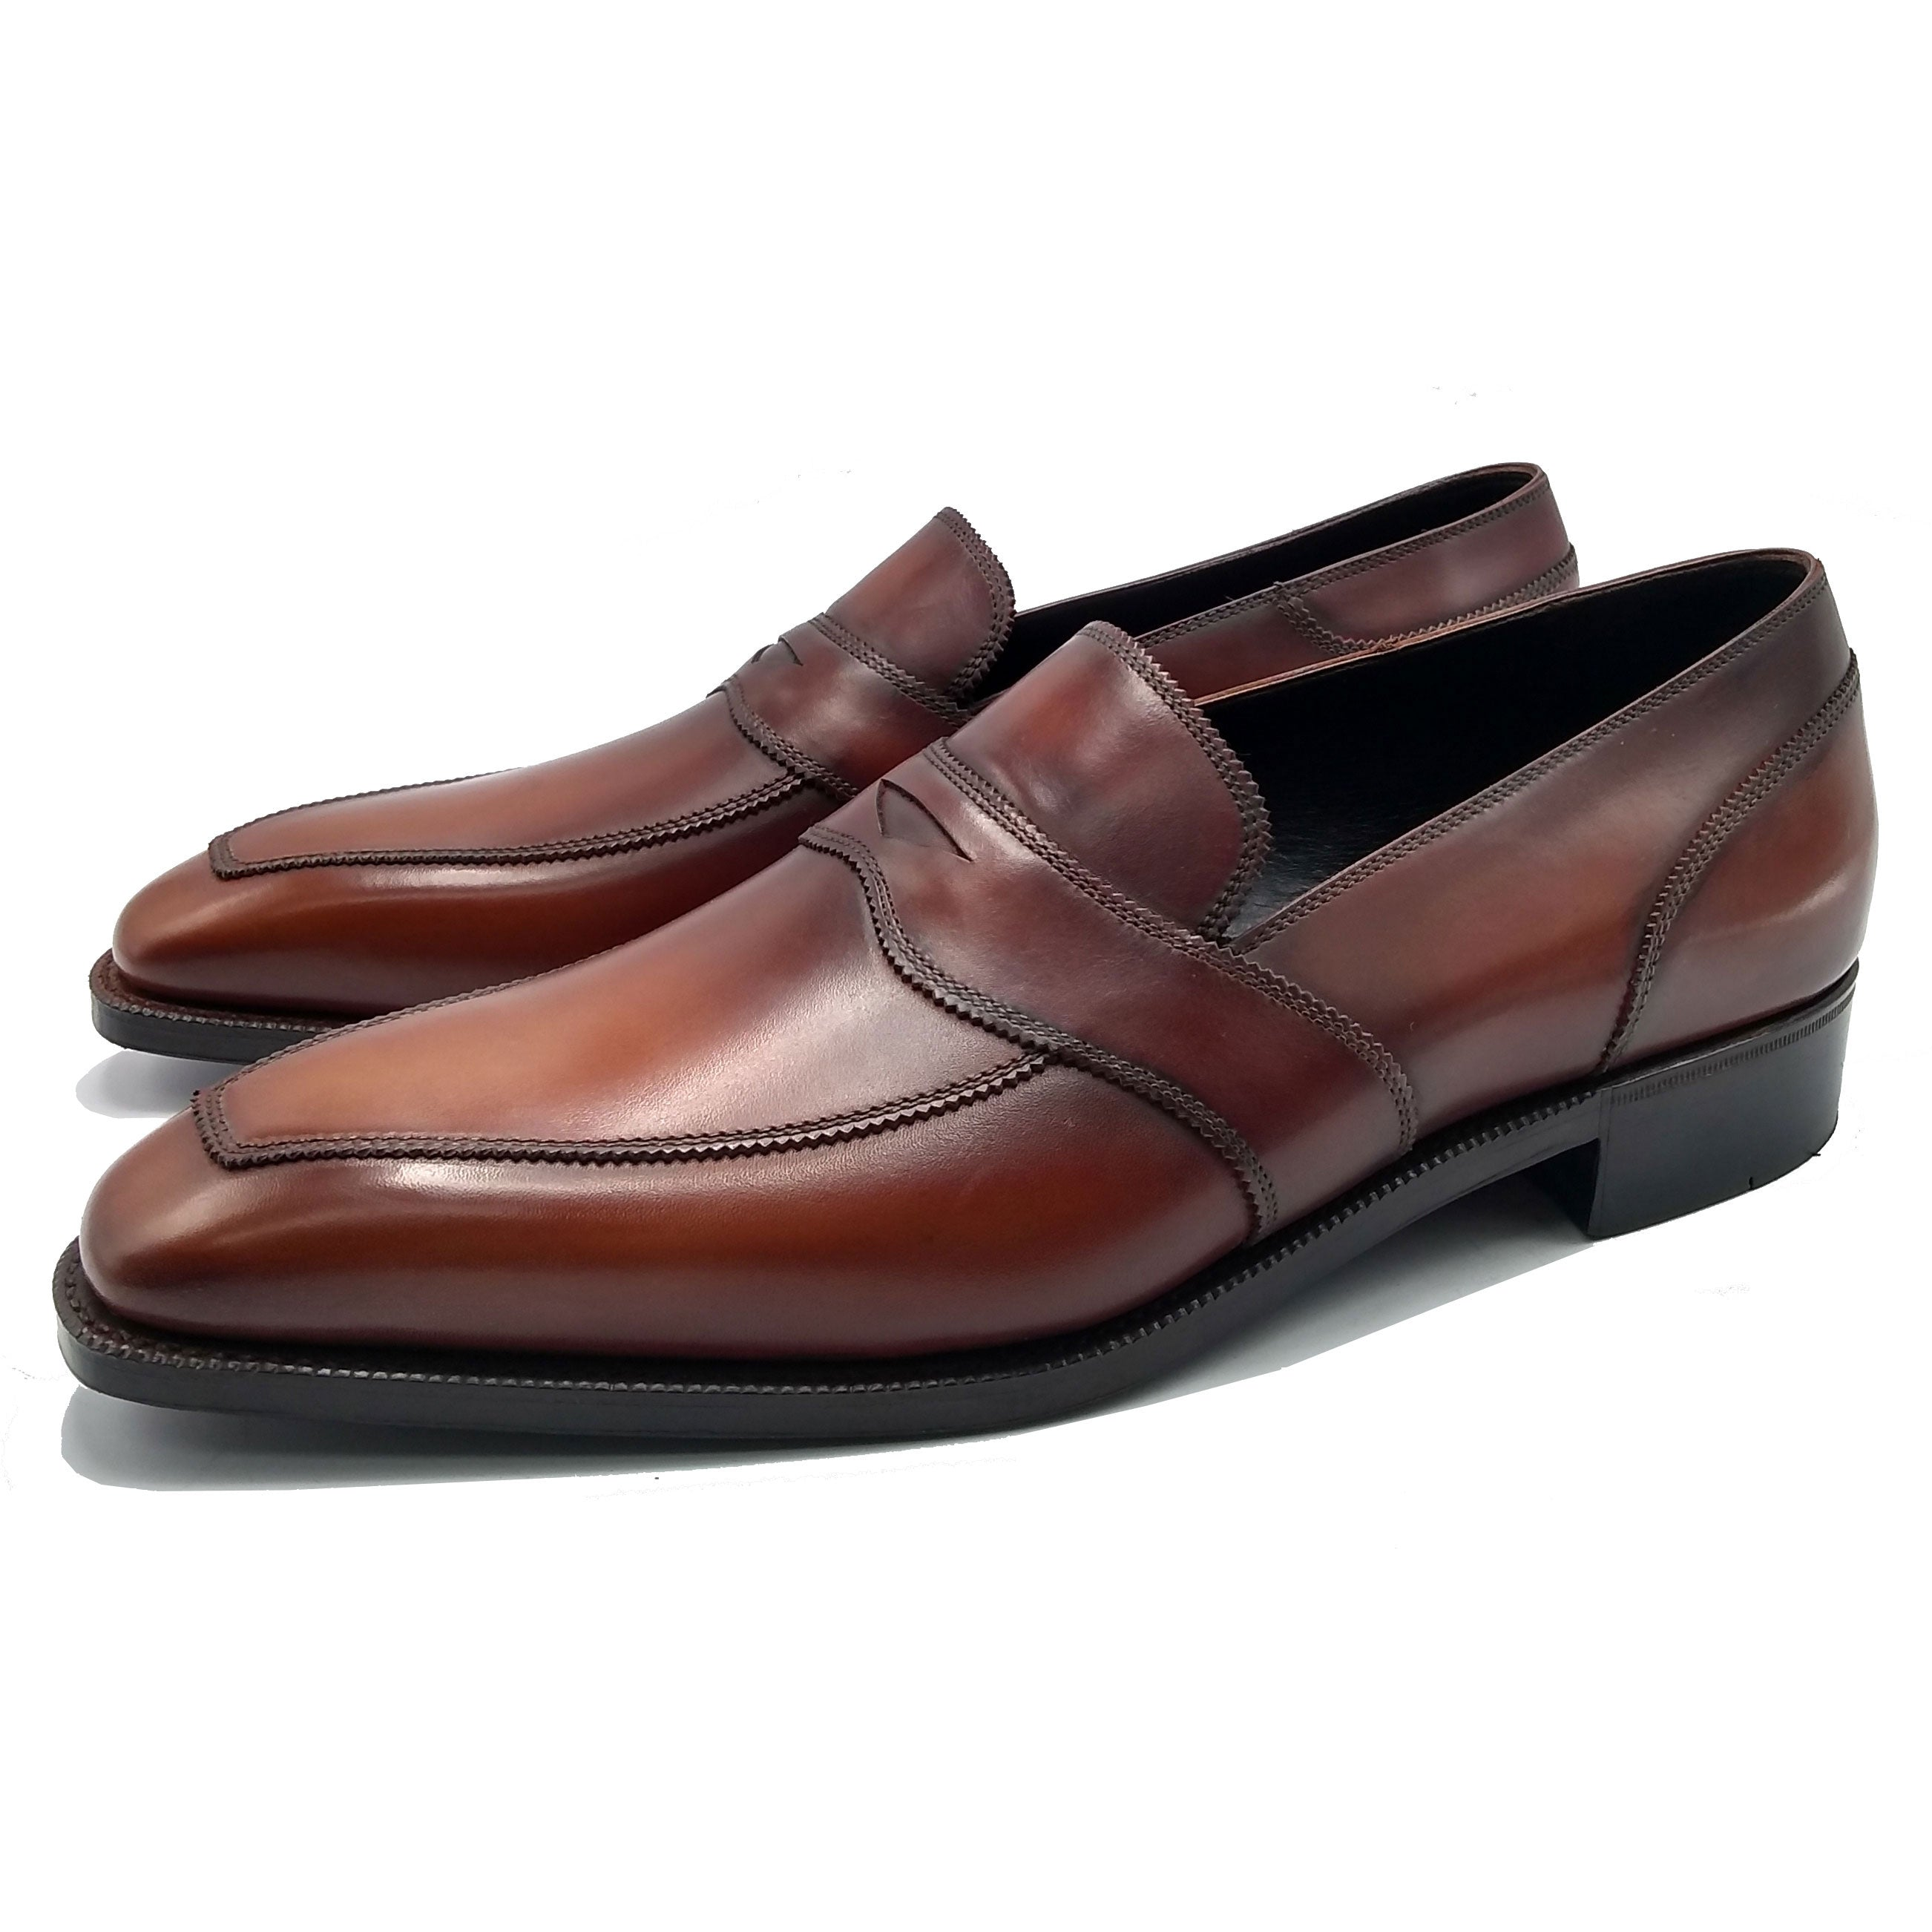 Penny Loafer (Made-to-Order) - Brown Box Calf